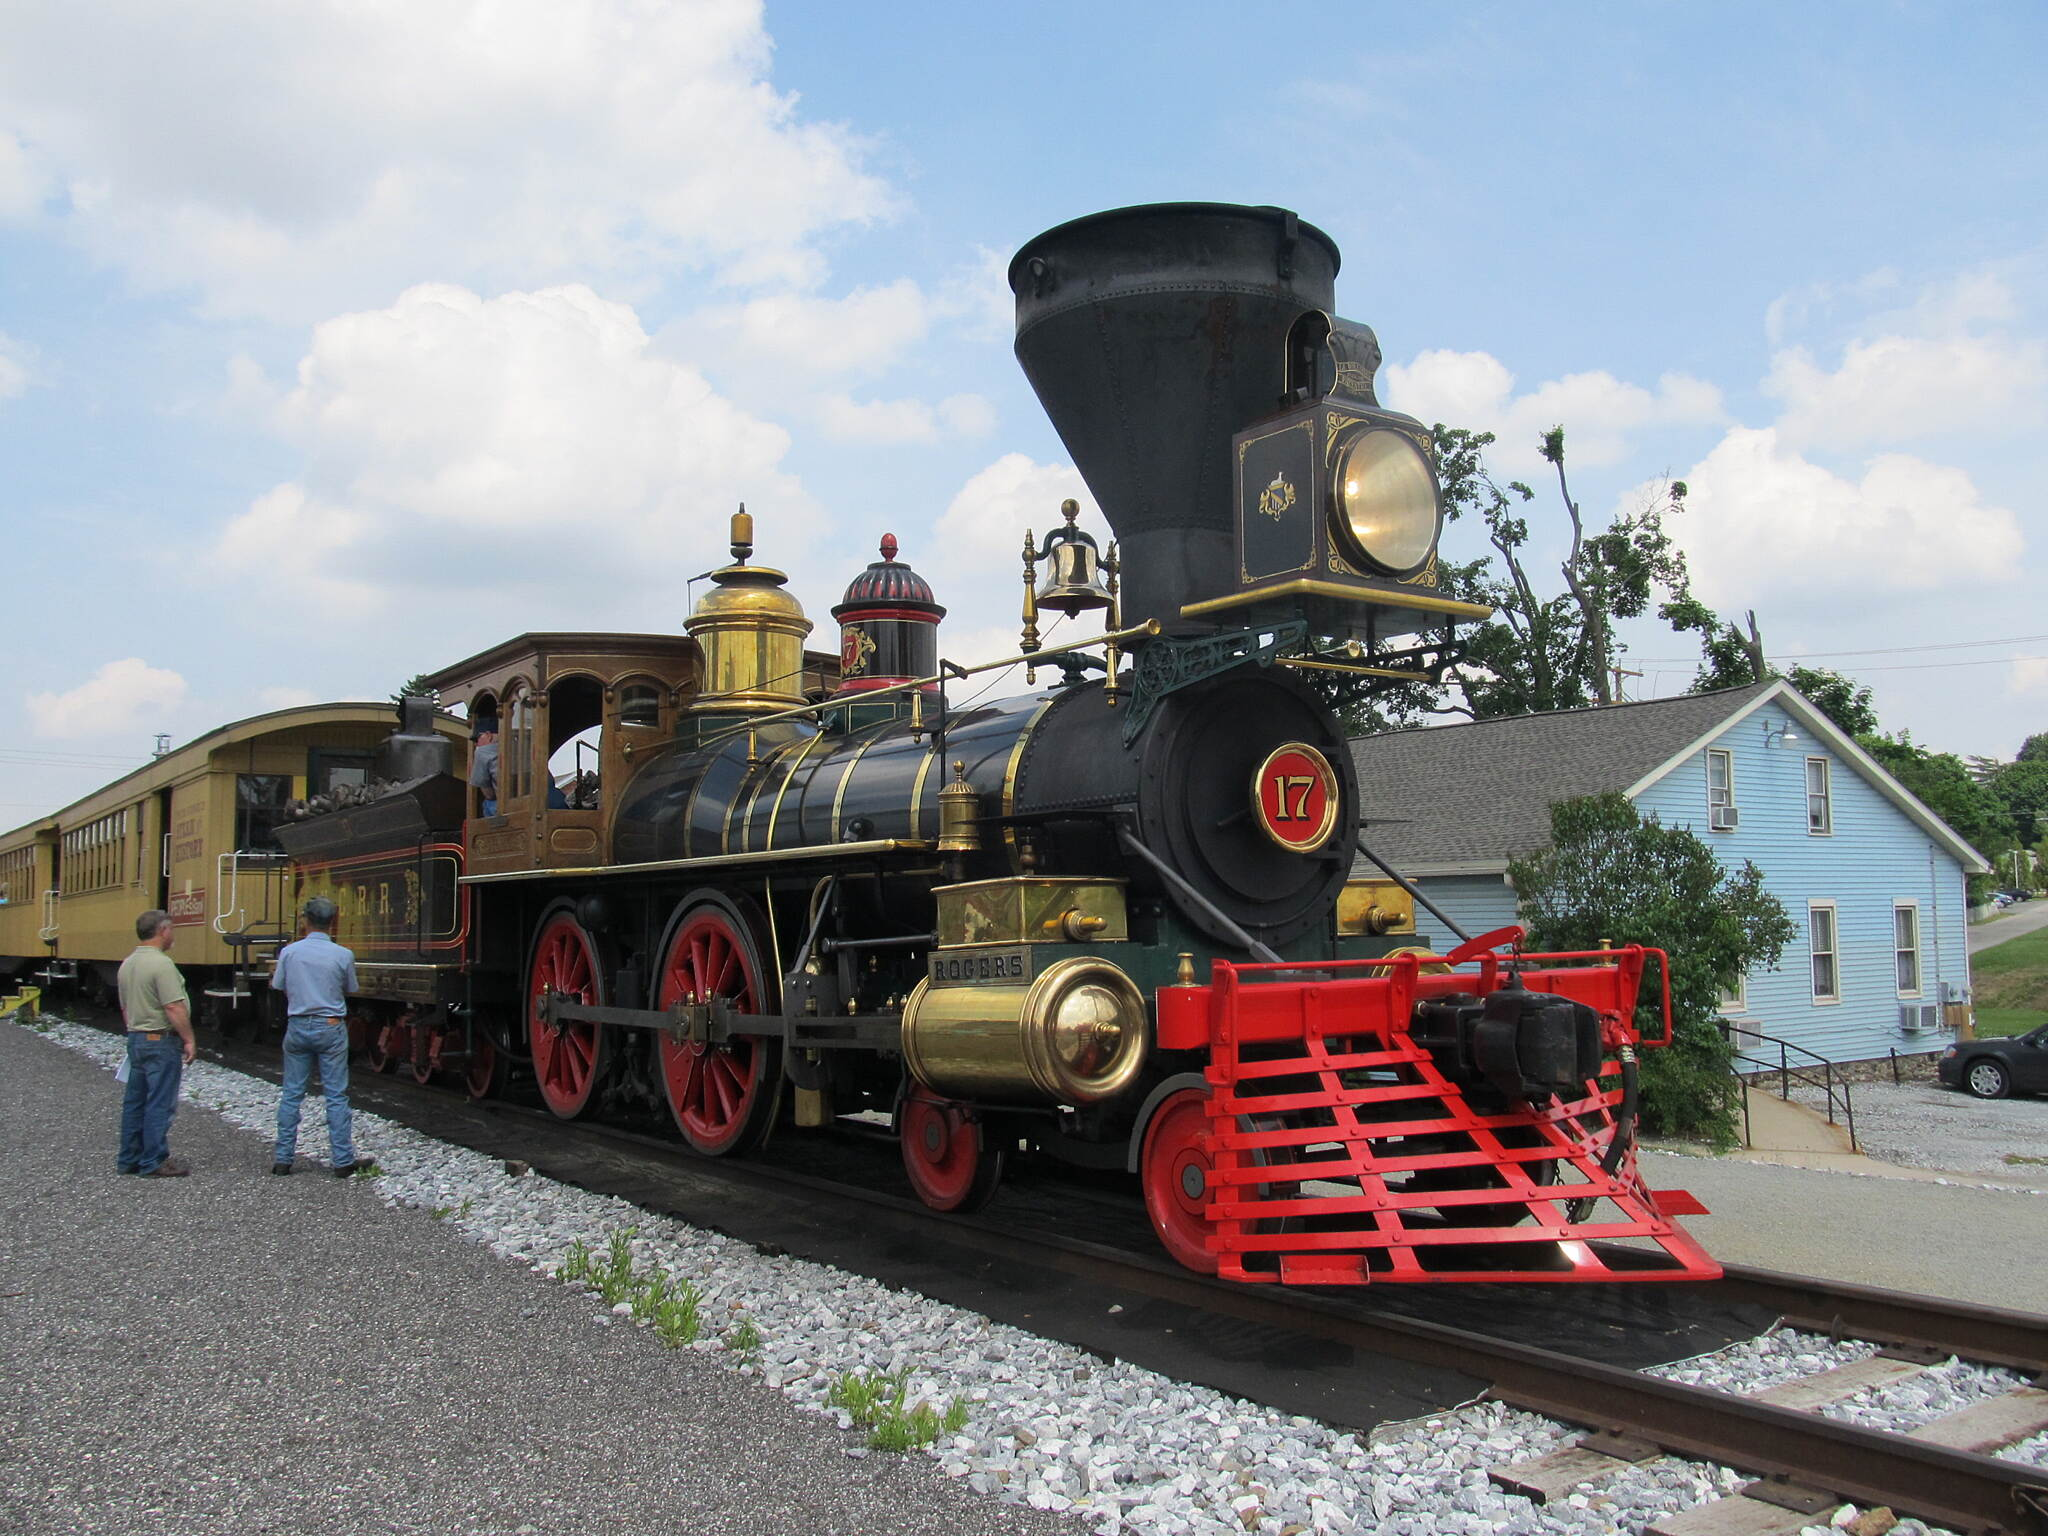 Heritage Rail Trail County Park Excursion train in New Freedom Civil War Replica Steam Engine